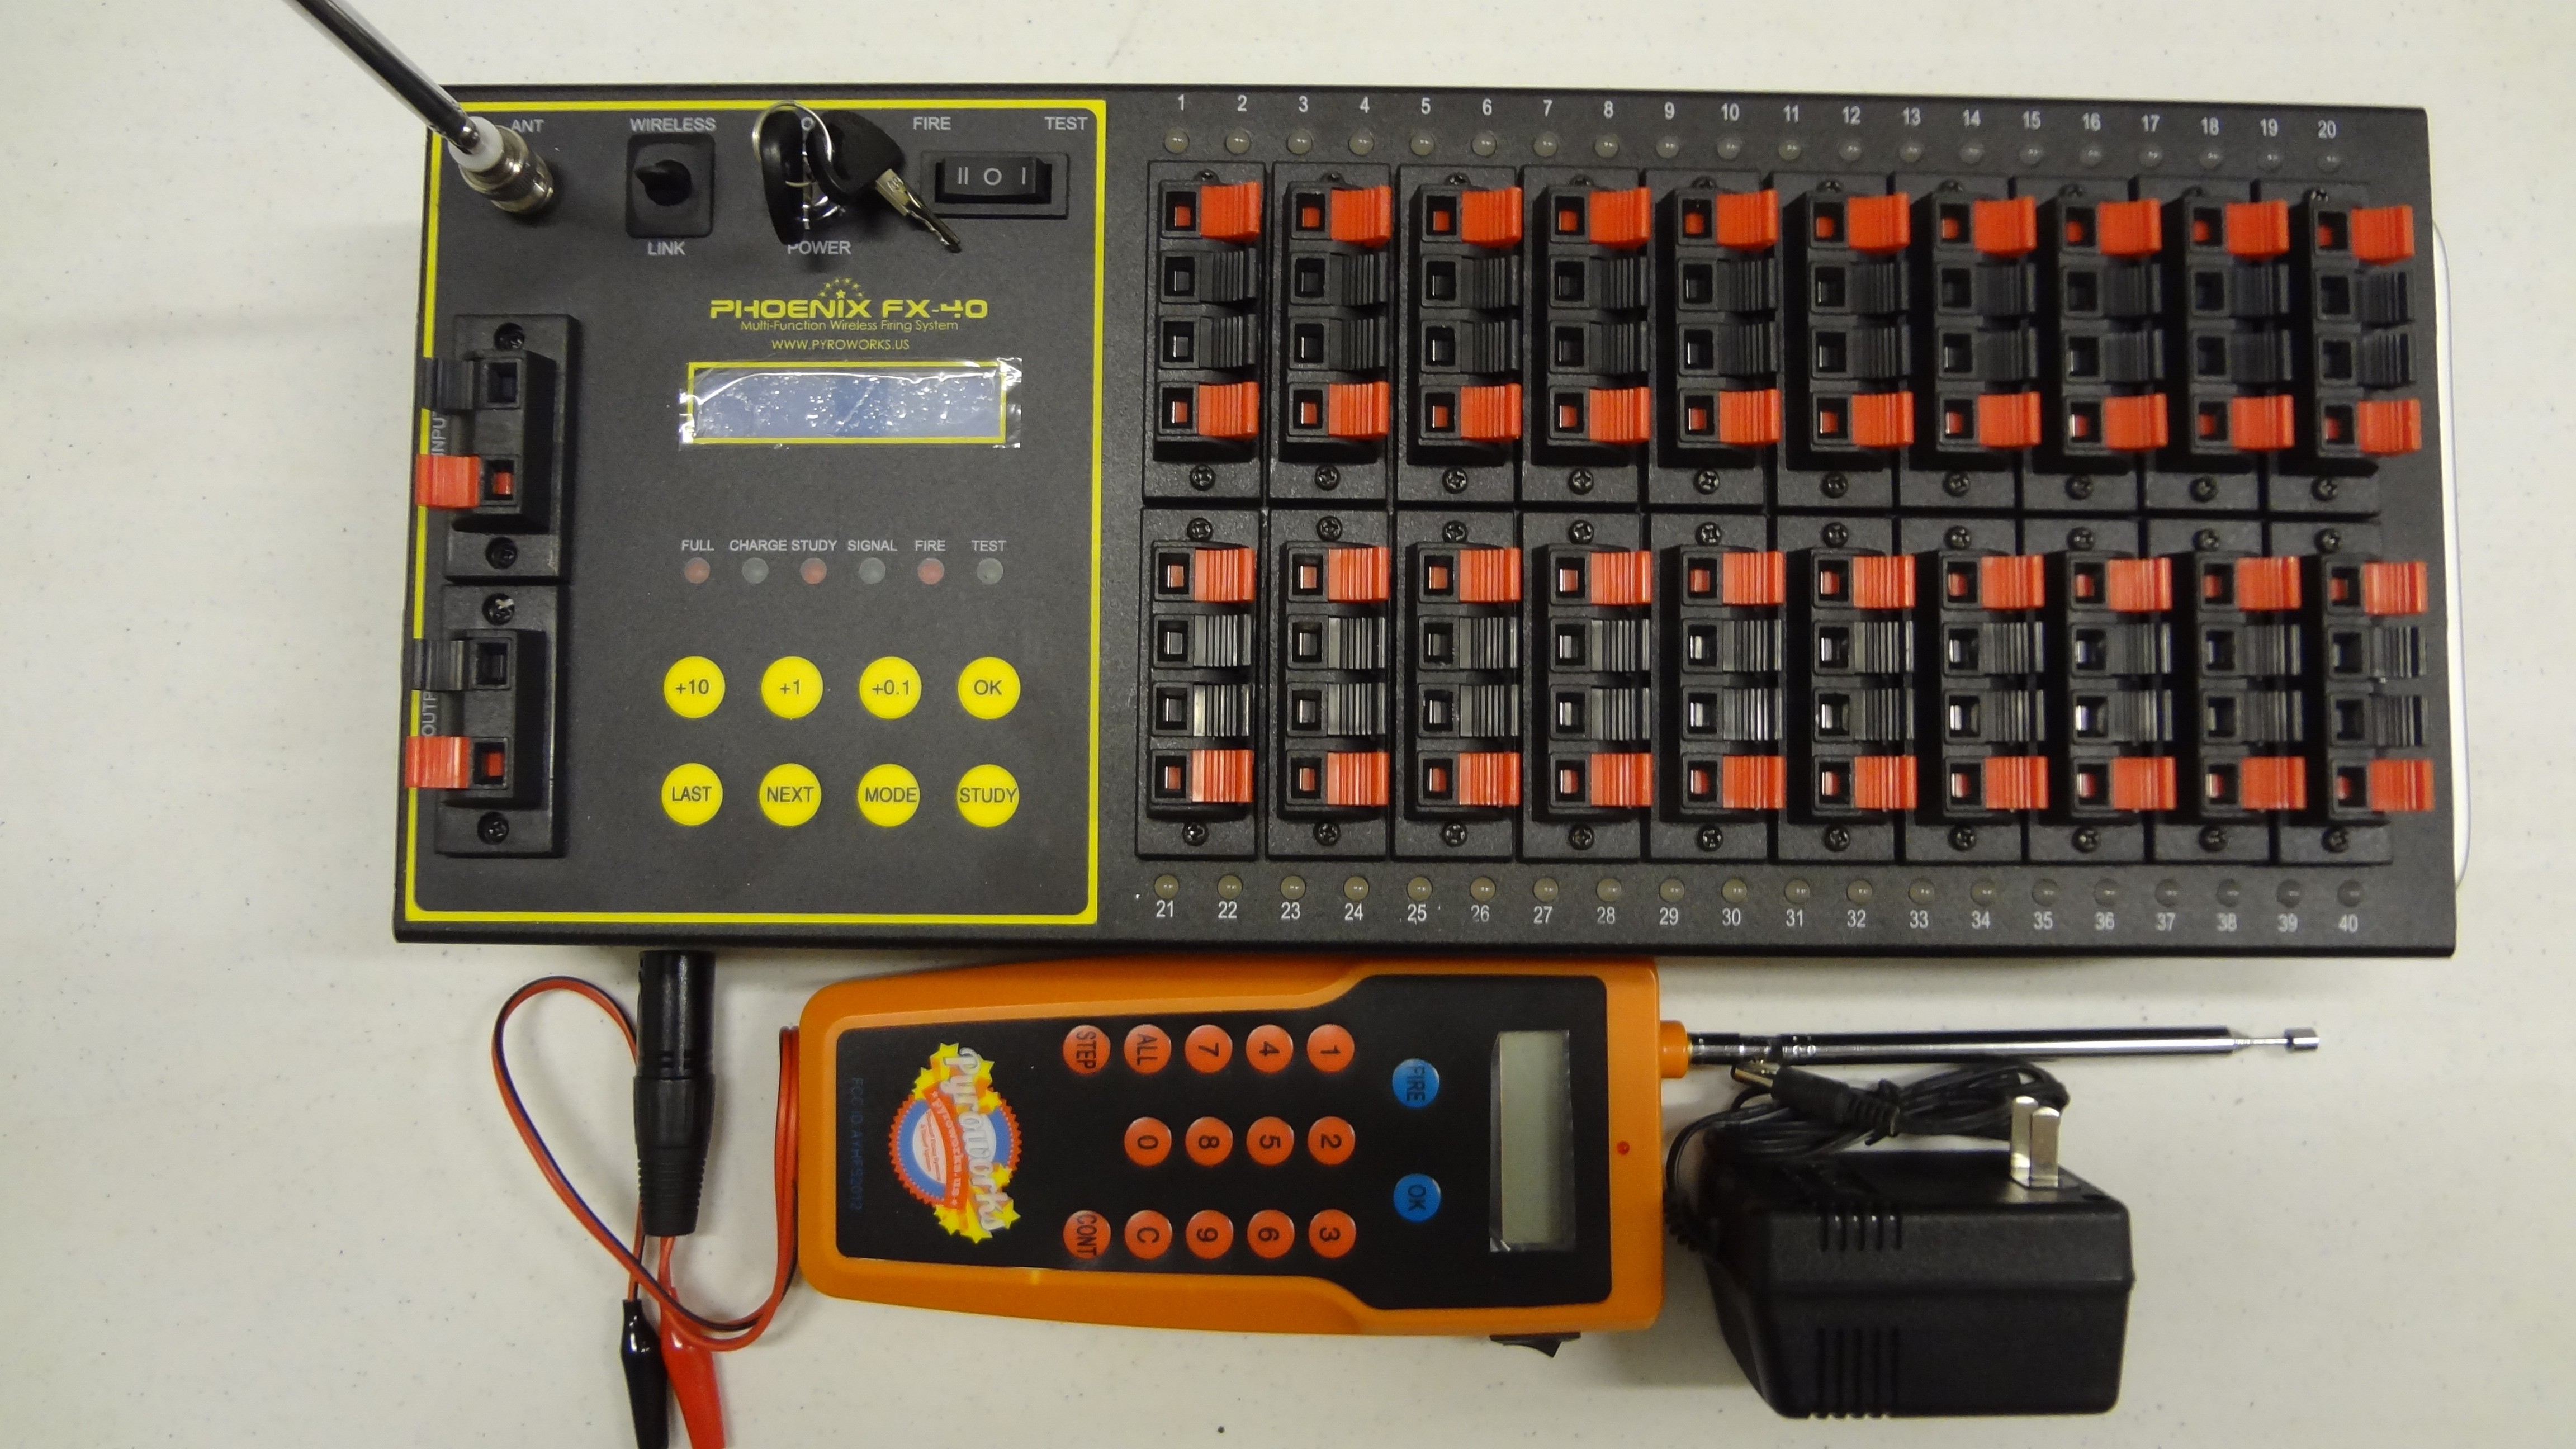 Phoenix FX-40 Multi-Function Wireless Firing System